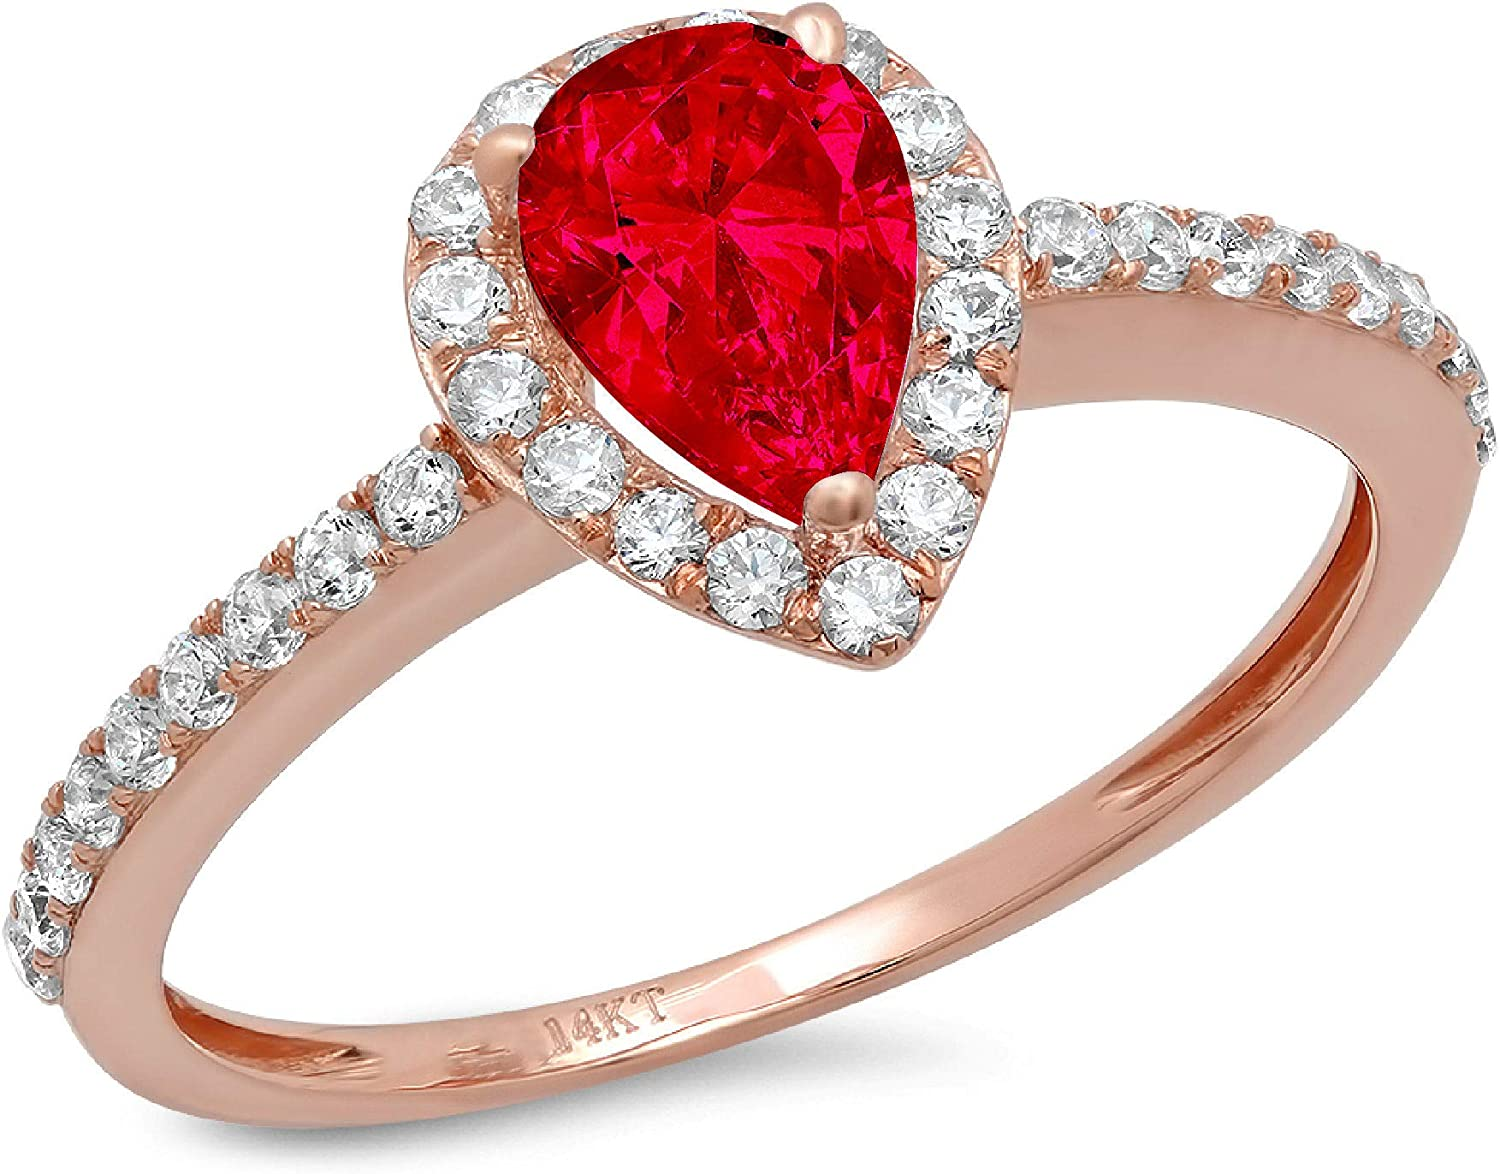 1.27 Brilliant Pear Shape Solitaire with accent Stunning Genuine Flawless Simulated Pink Tourmaline Modern Promise Designer Ring 18k Rose Gold